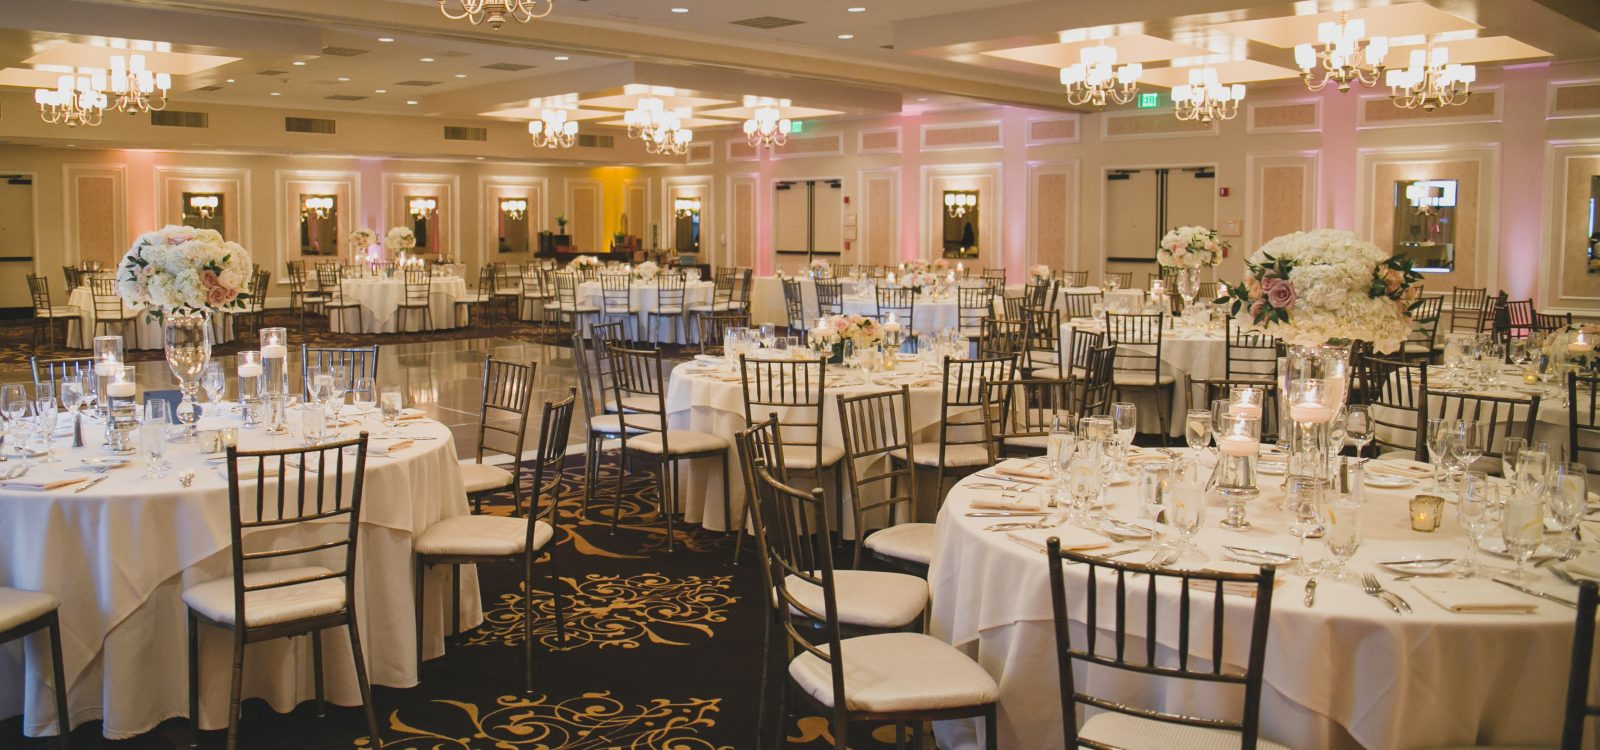 wedding venues in North Hollywood Hotel